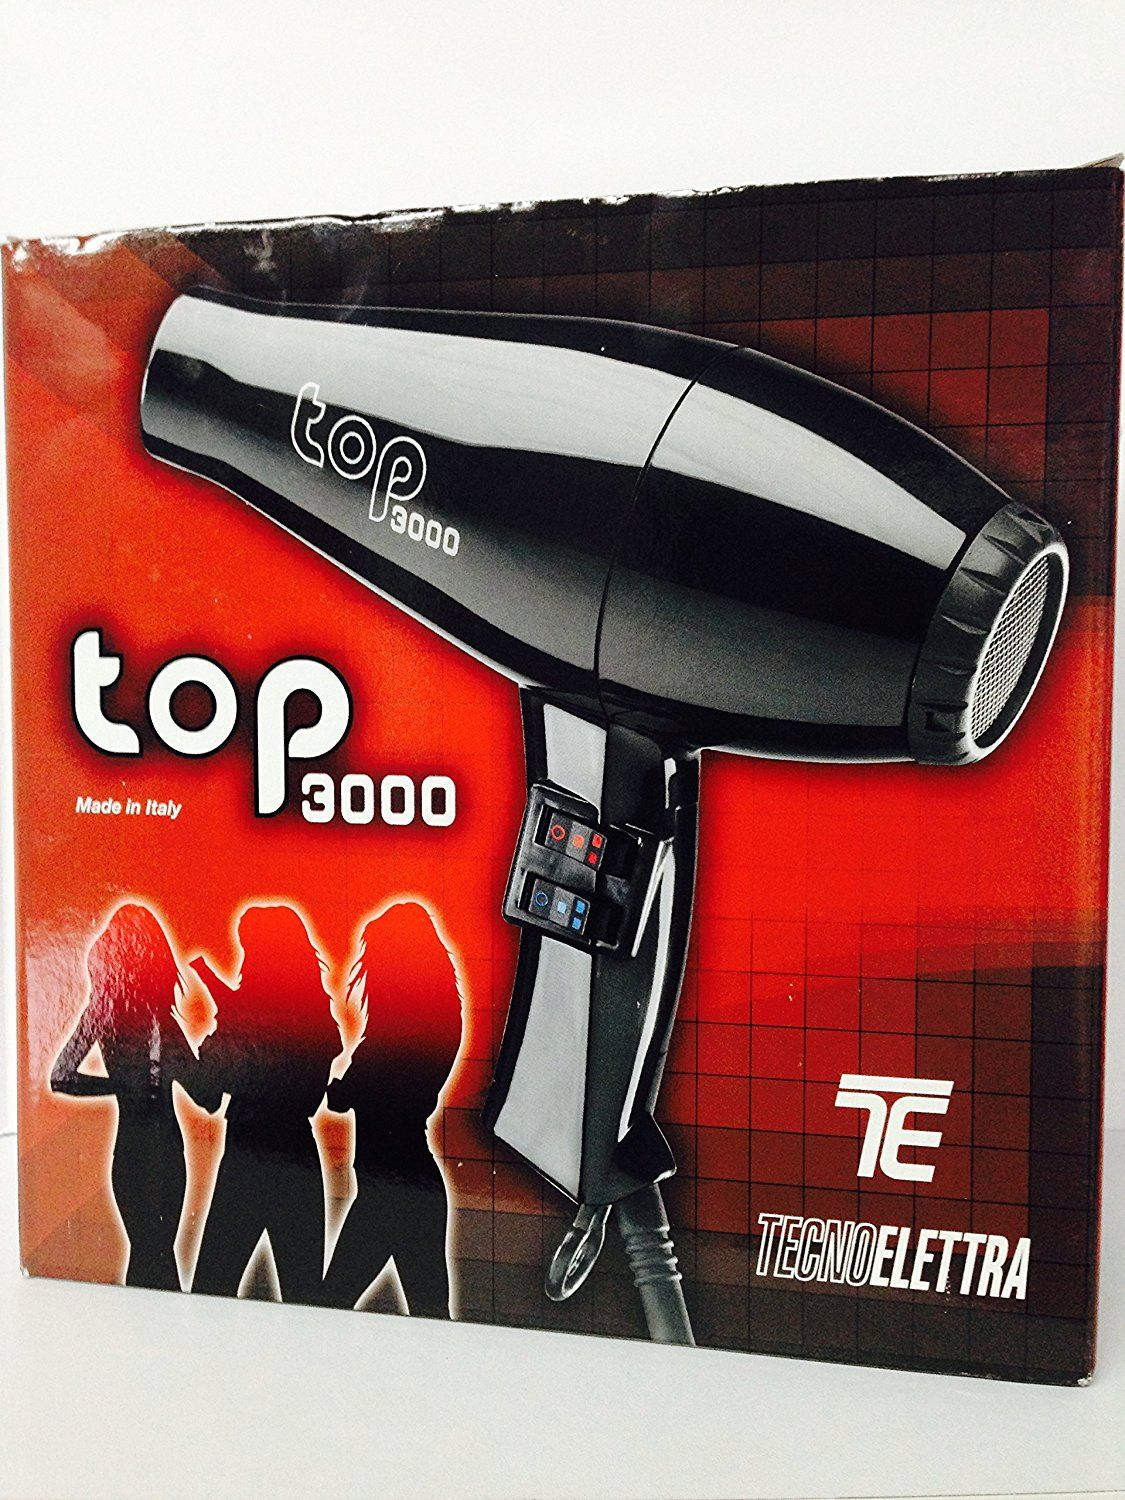 TecnoElettra Blow Dryer (Black) Top 3000 Free Starry Sexy